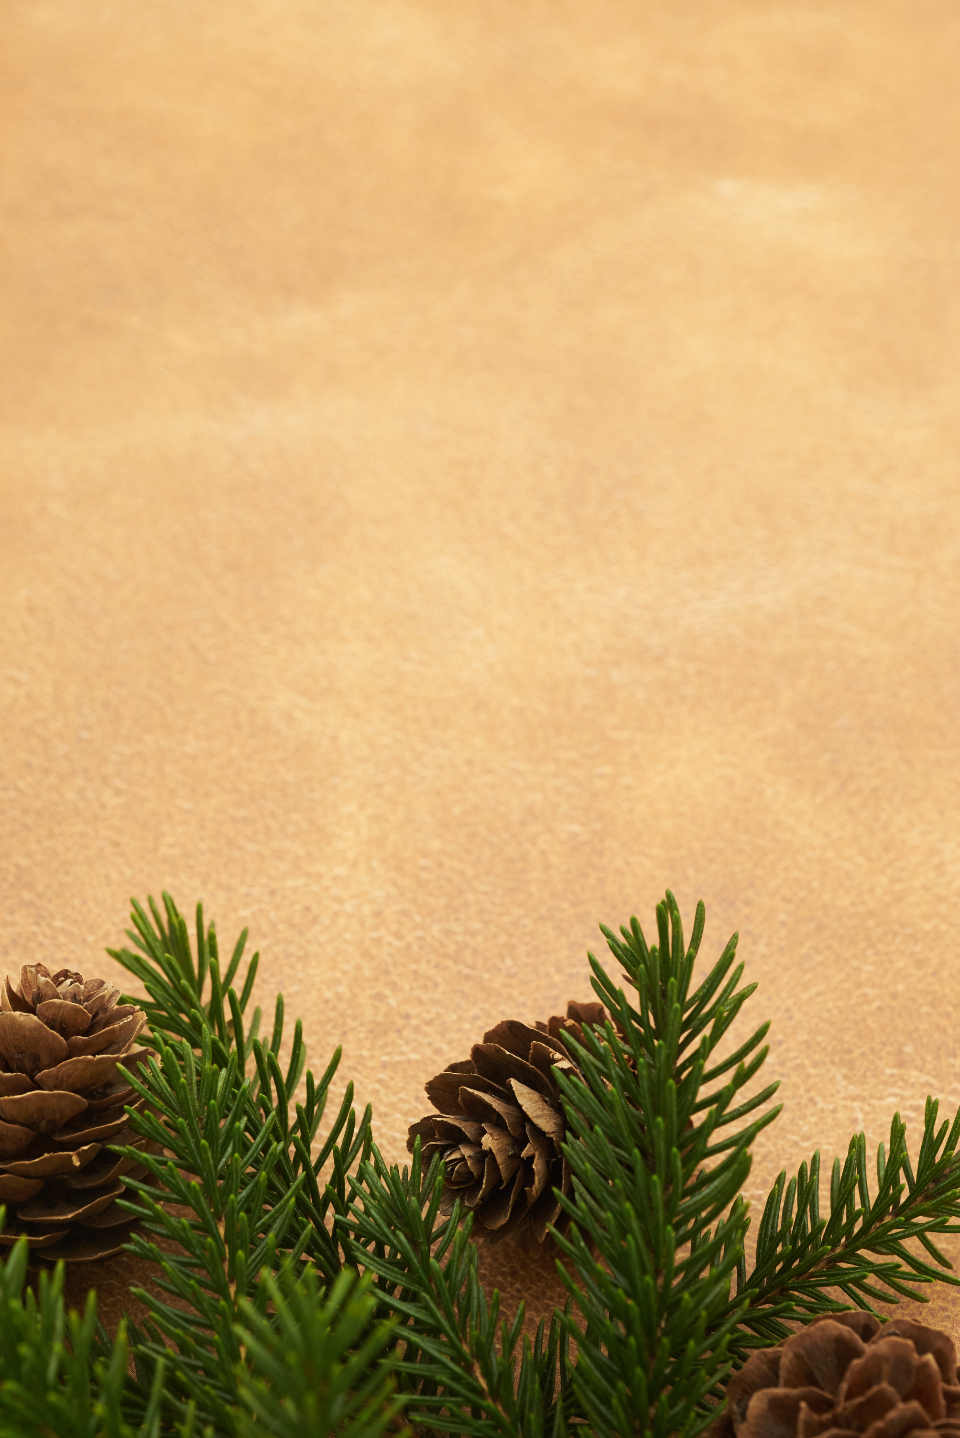 seasonal backgrounds christmas flat lay pine tree branches festive cone copyspace holiday merry xmas background